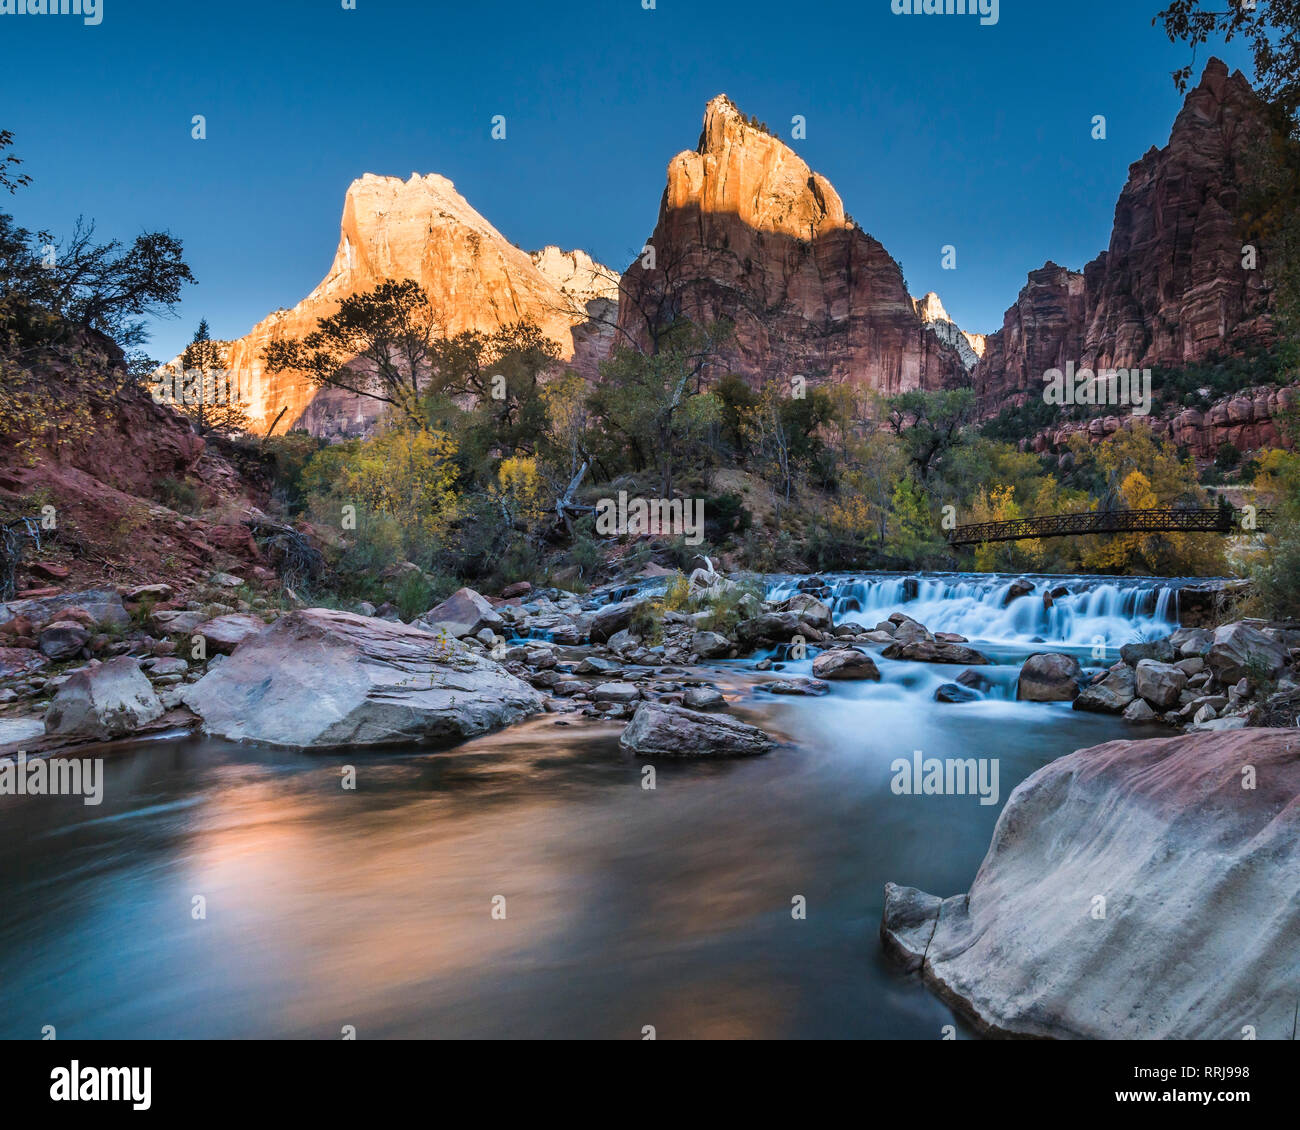 View across the Virgin River to Abraham and Isaac Peaks, sunrise, Court of the Patriarchs, Zion National Park, Utah, United States of America - Stock Image